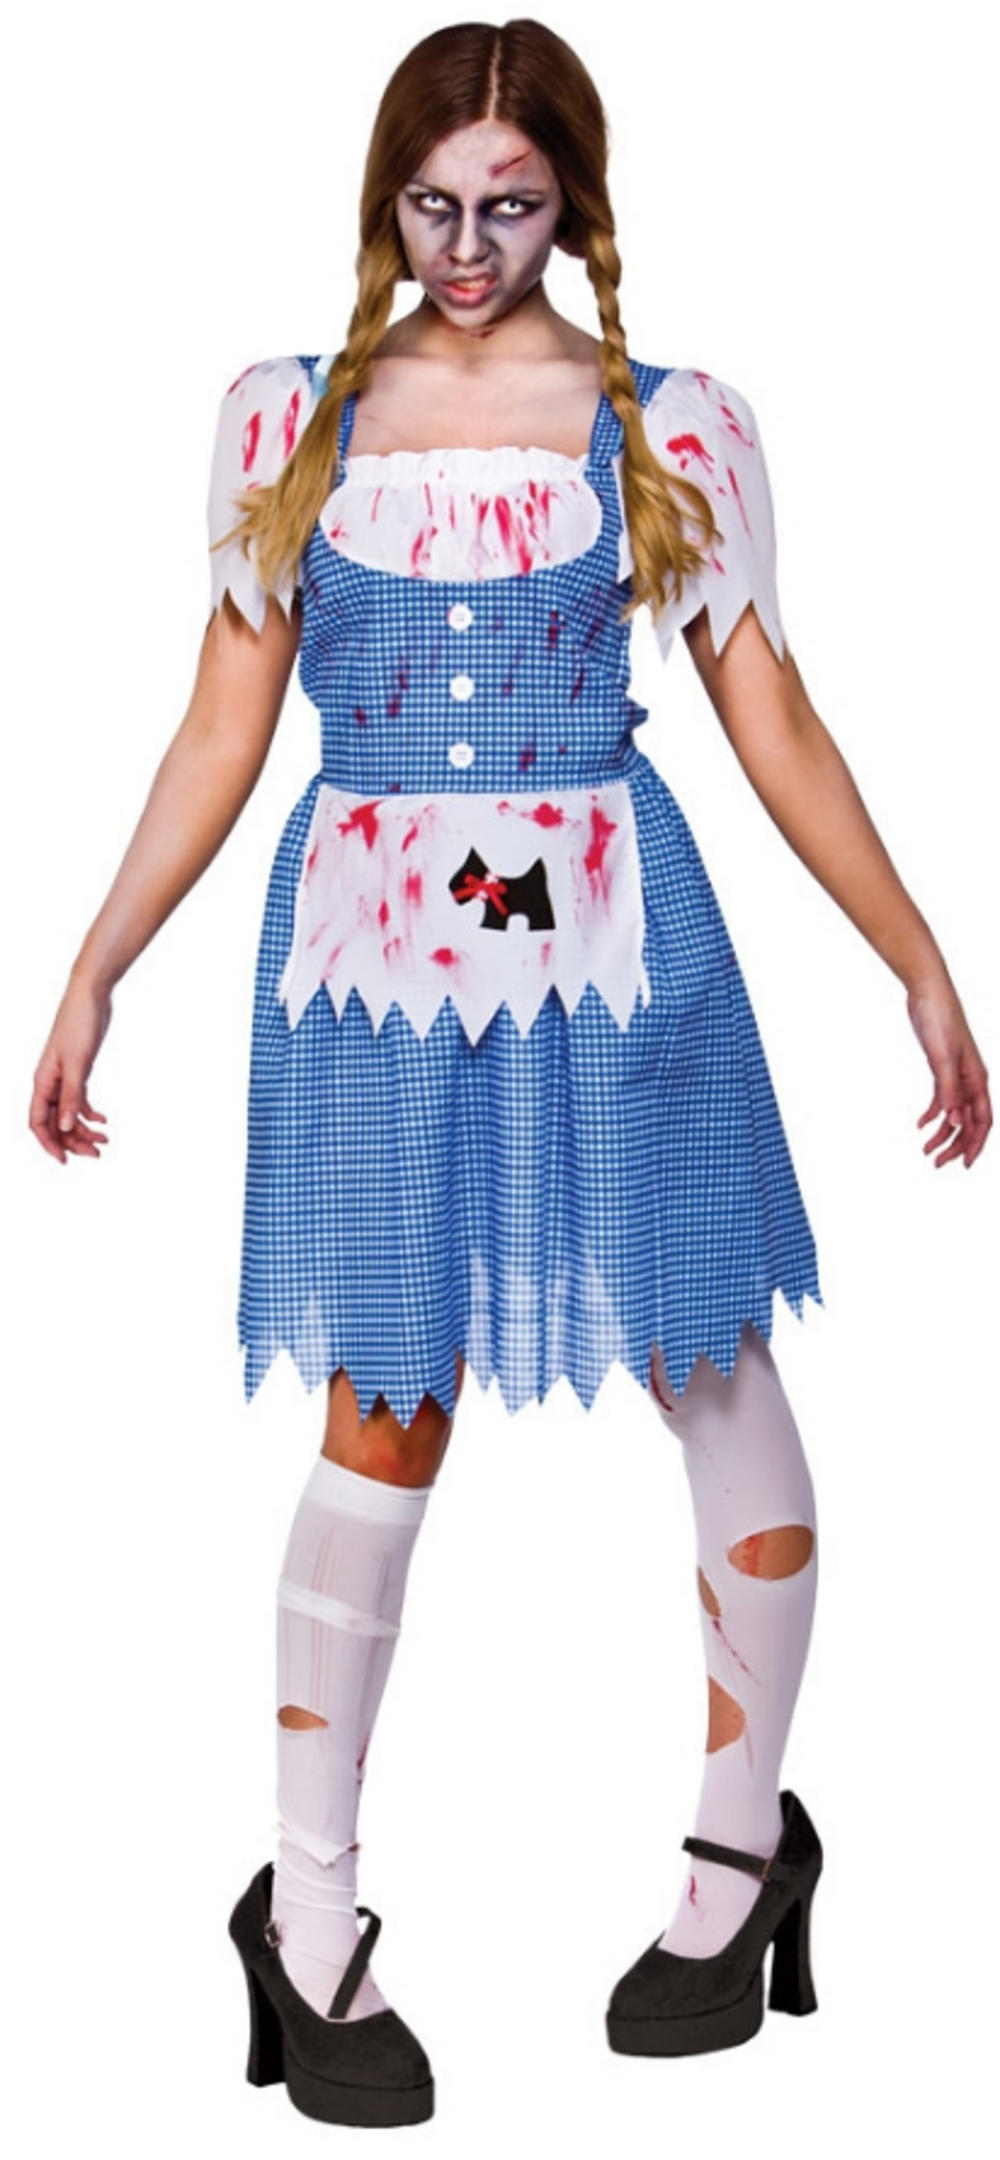 deceased dorothy costume | all ladies halloween costumes | mega